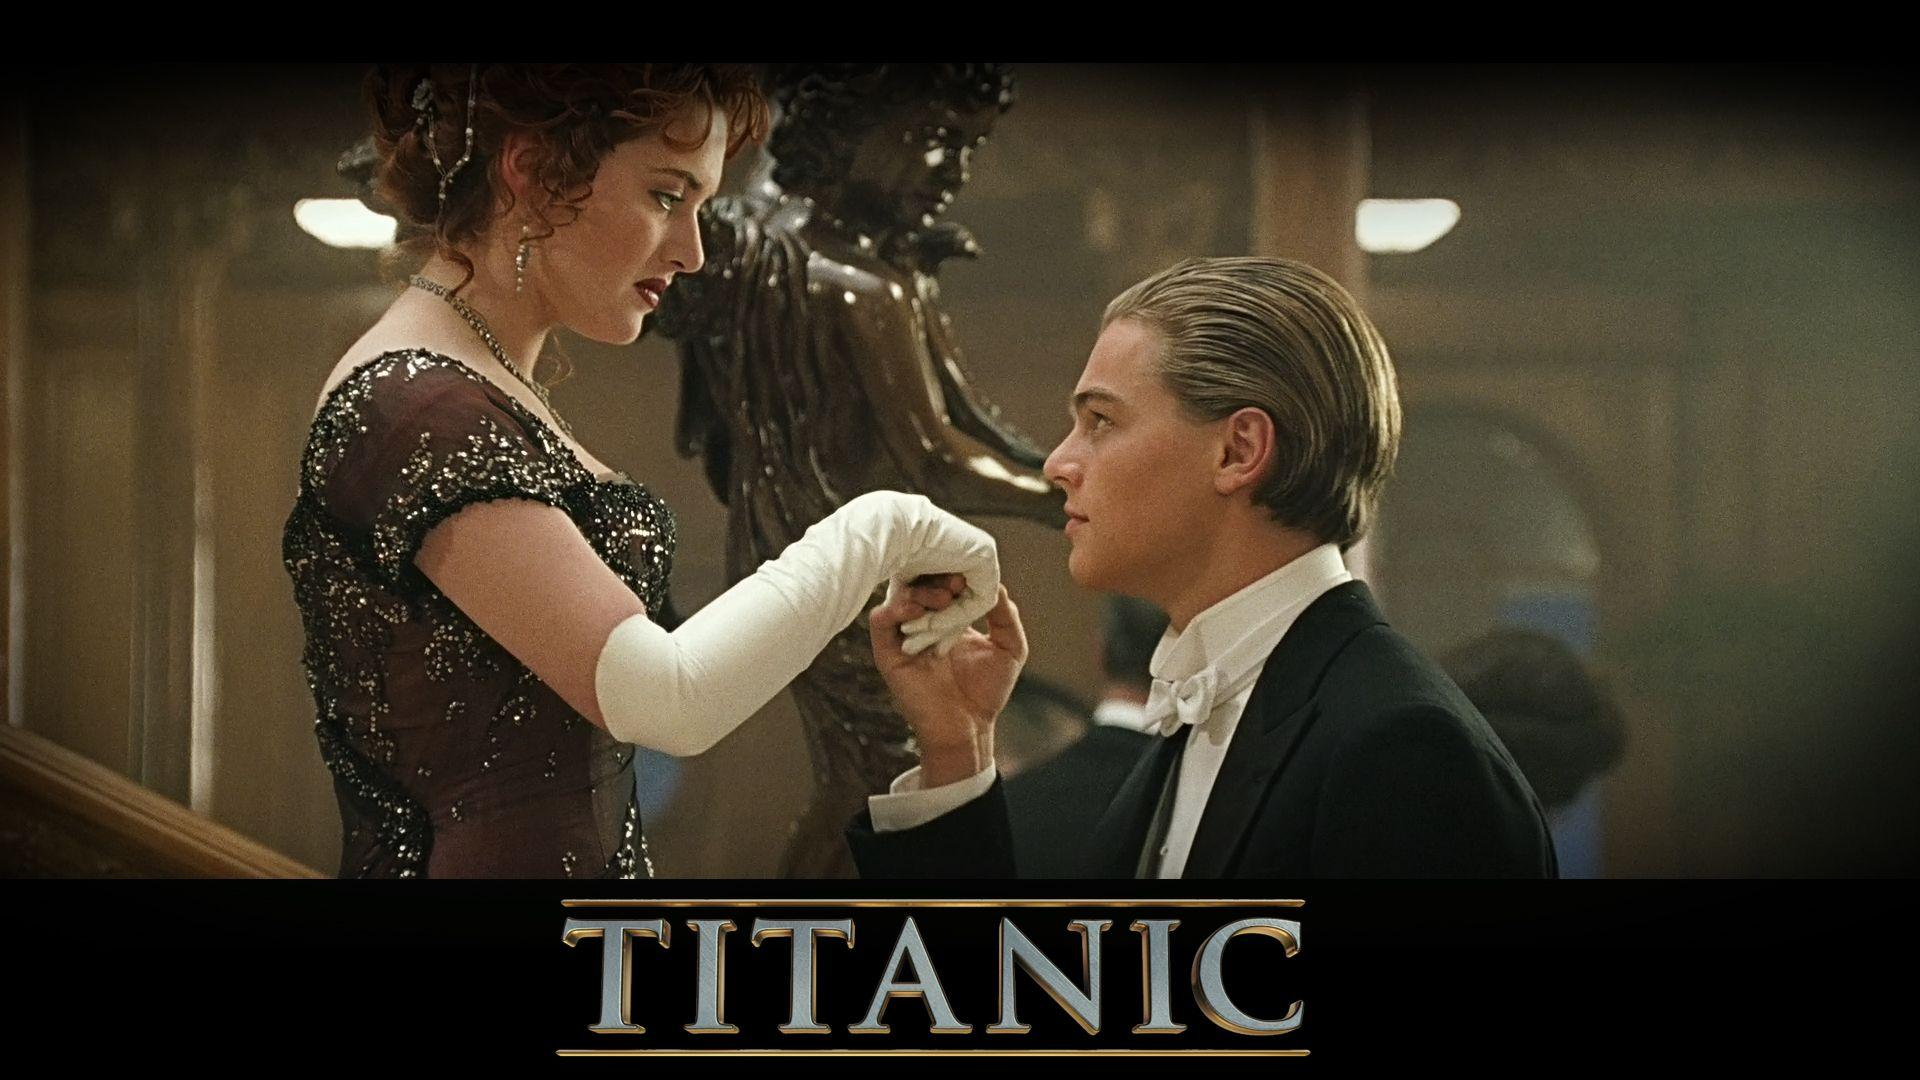 Titanic Movie Wallpapers Hd Backgrounds Wallpapers 16 HD